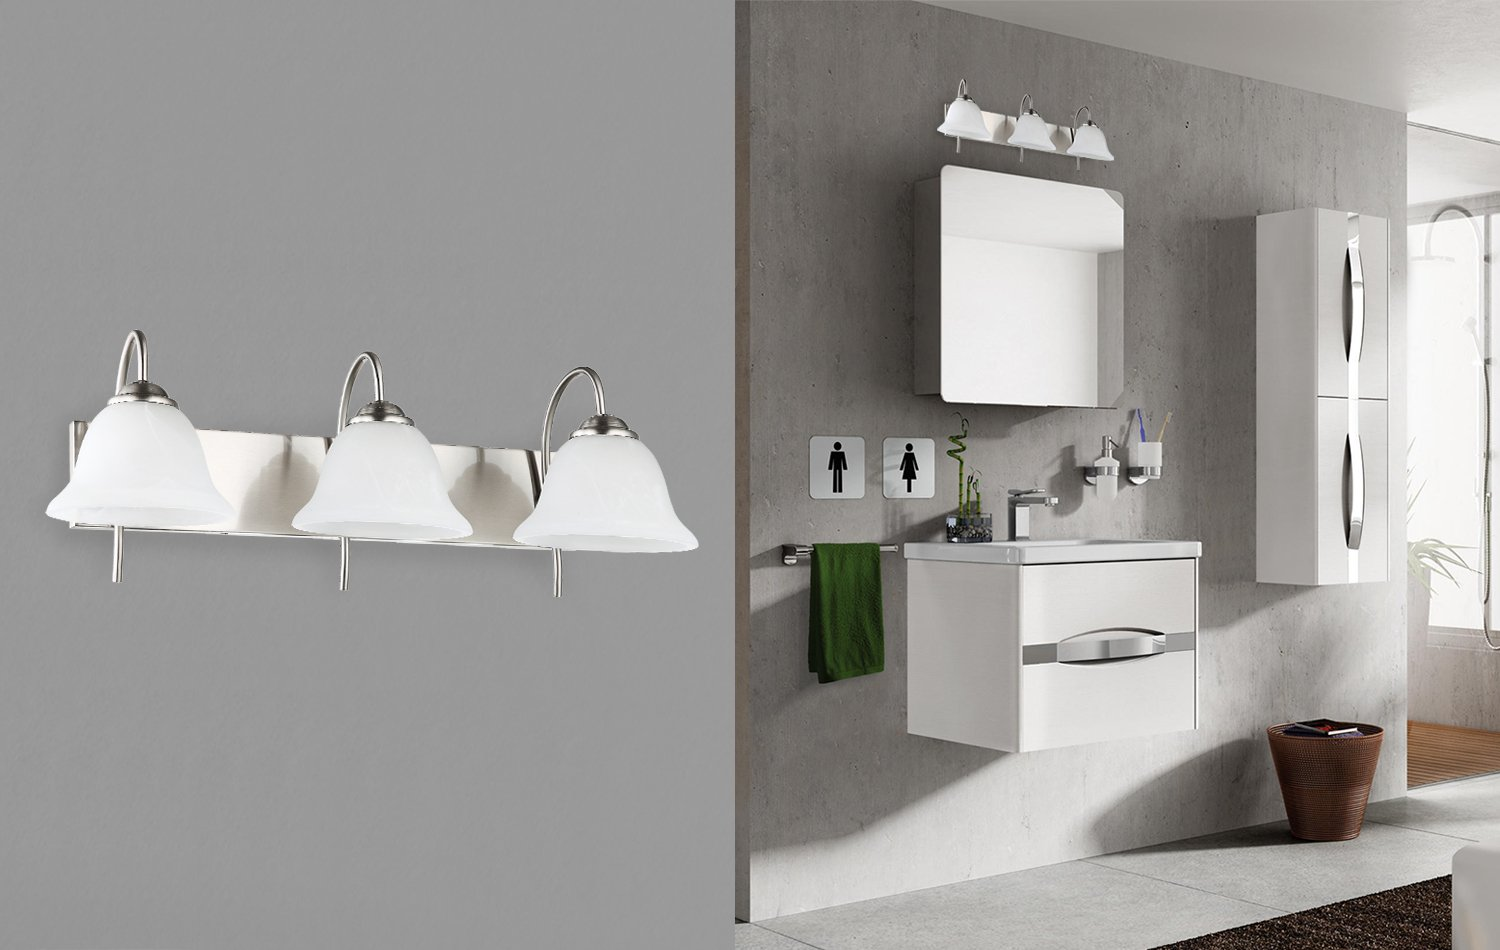 3-Light Bathroom VANITY and Kitchen Wall Sconce Fixture, Satin Nickel Finish with Alabaster Glass Bell Shades, E26 Medium Base For Three Bulbs, UL Listed by OSTWIN (Image #6)